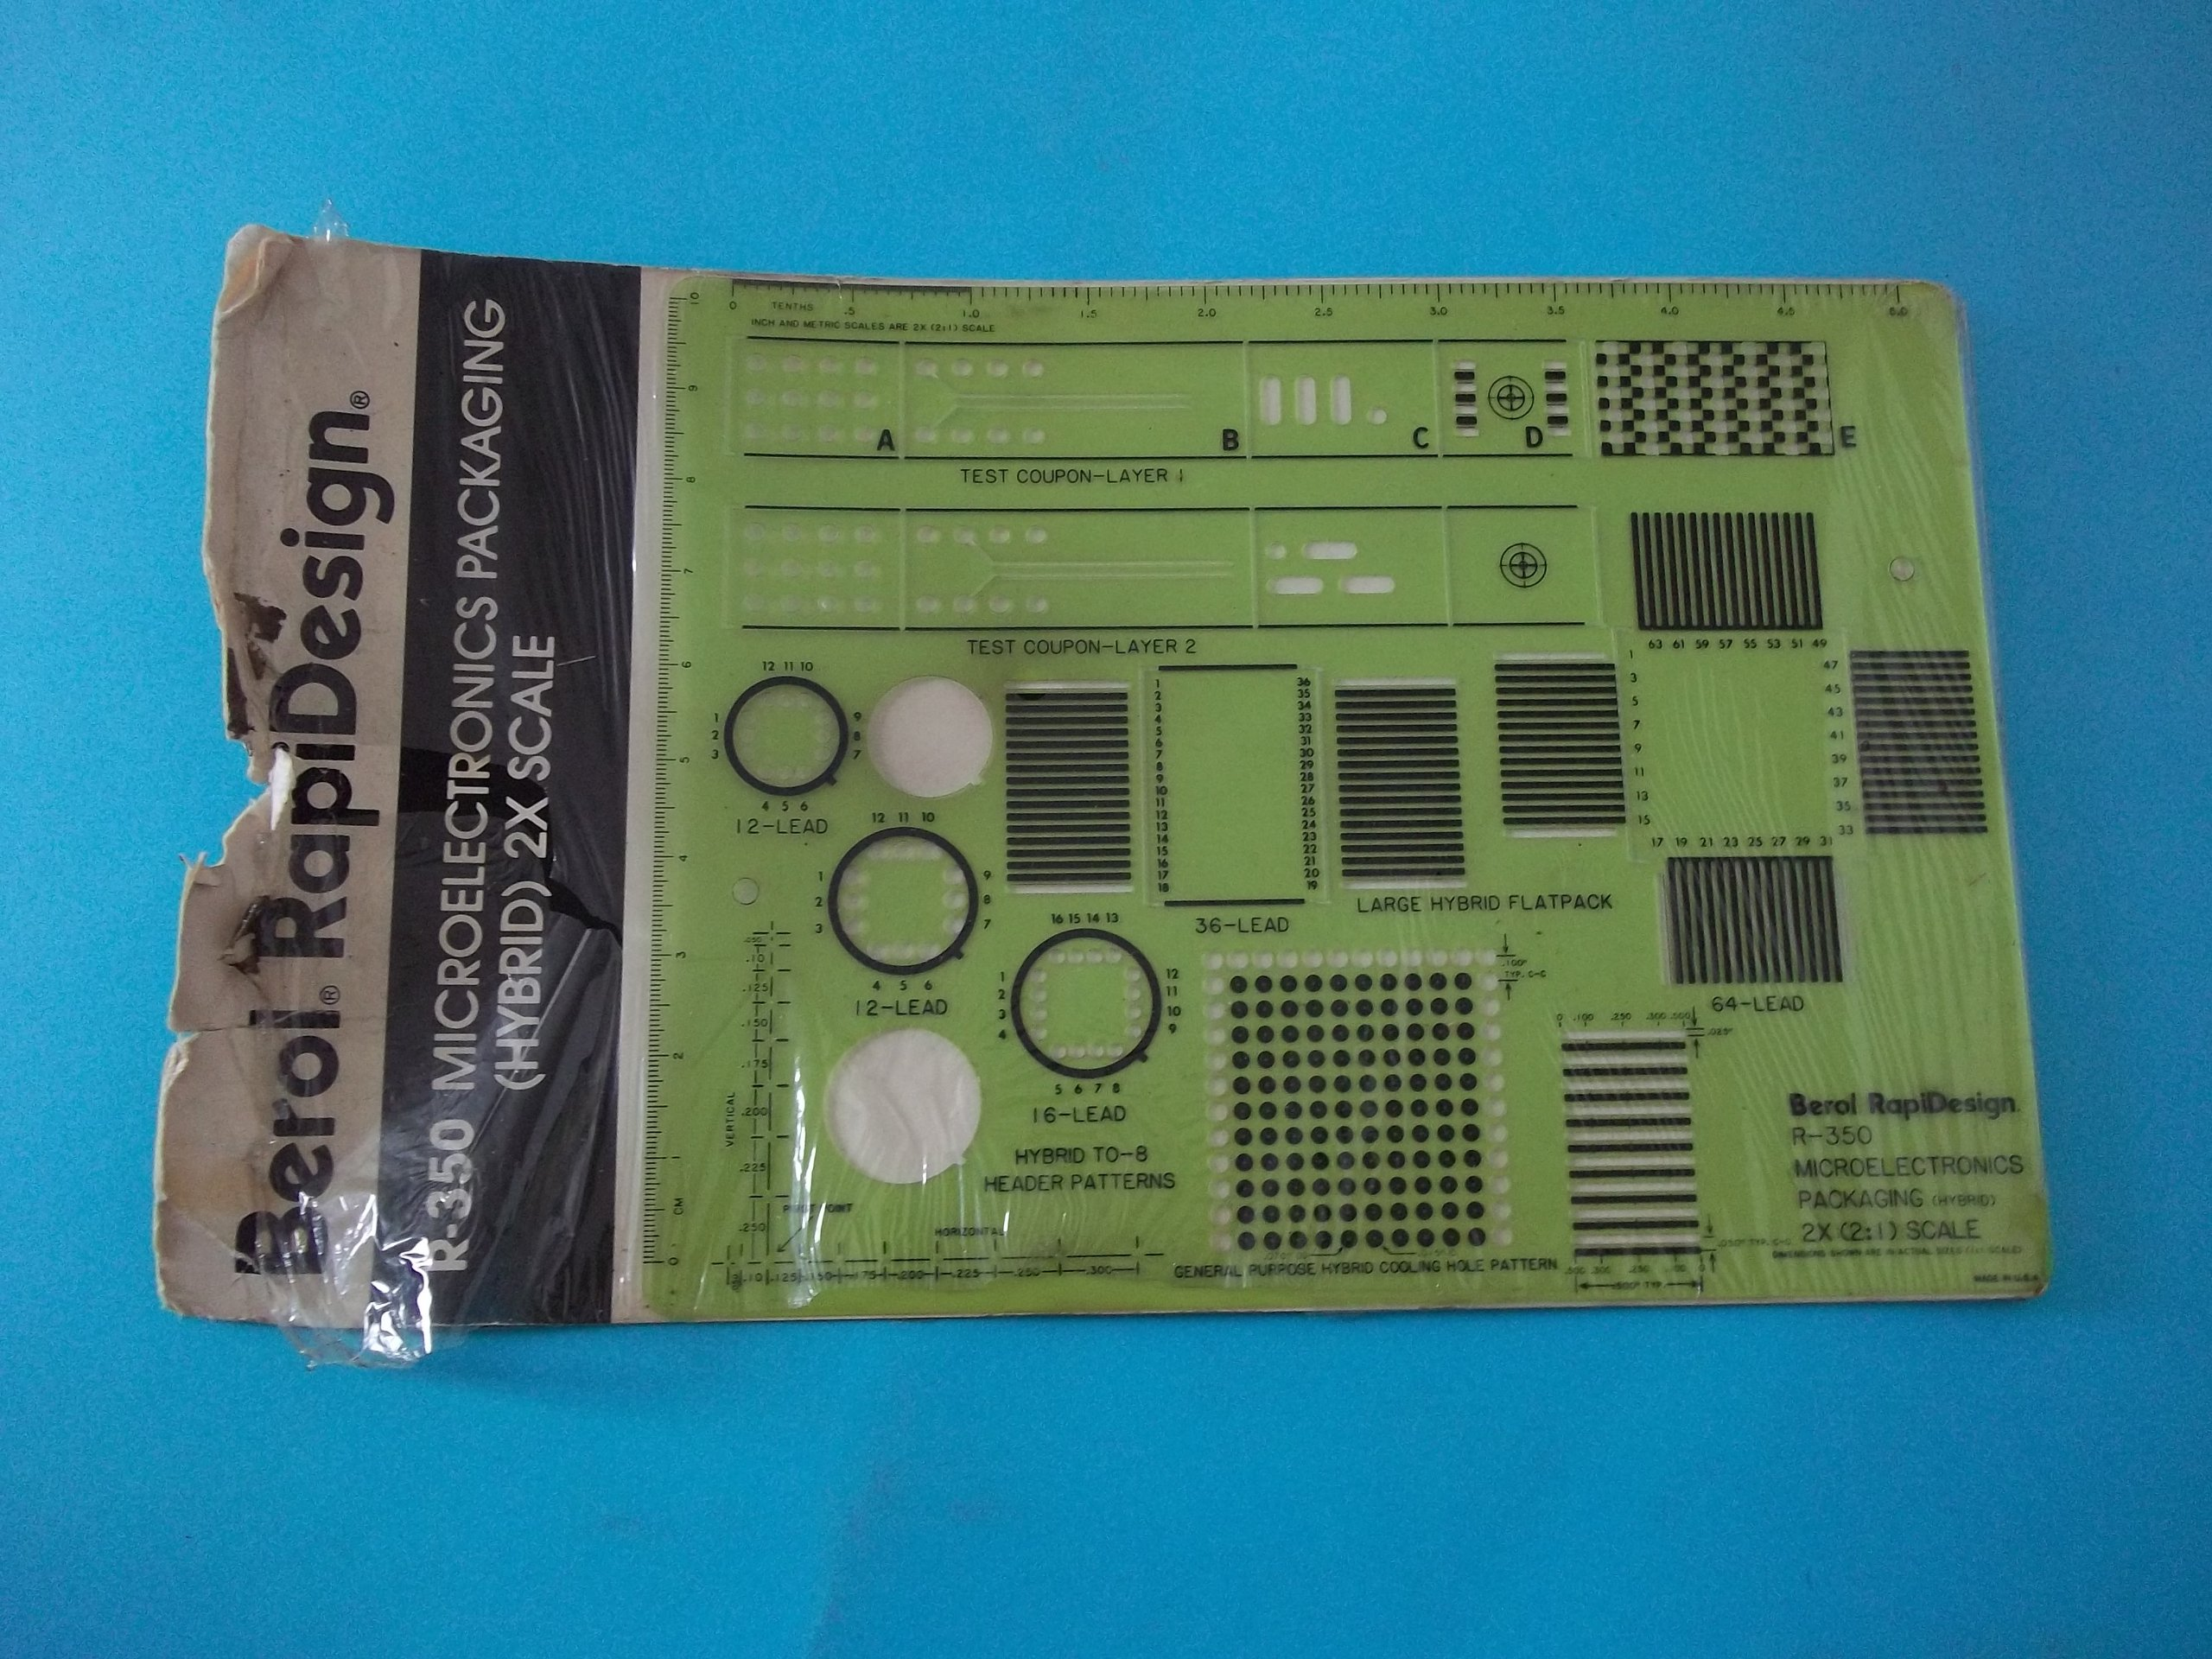 Berol RapiDesign R-350 MicroElectronics Packaging (Hybrid) 2X Scale Made in USA